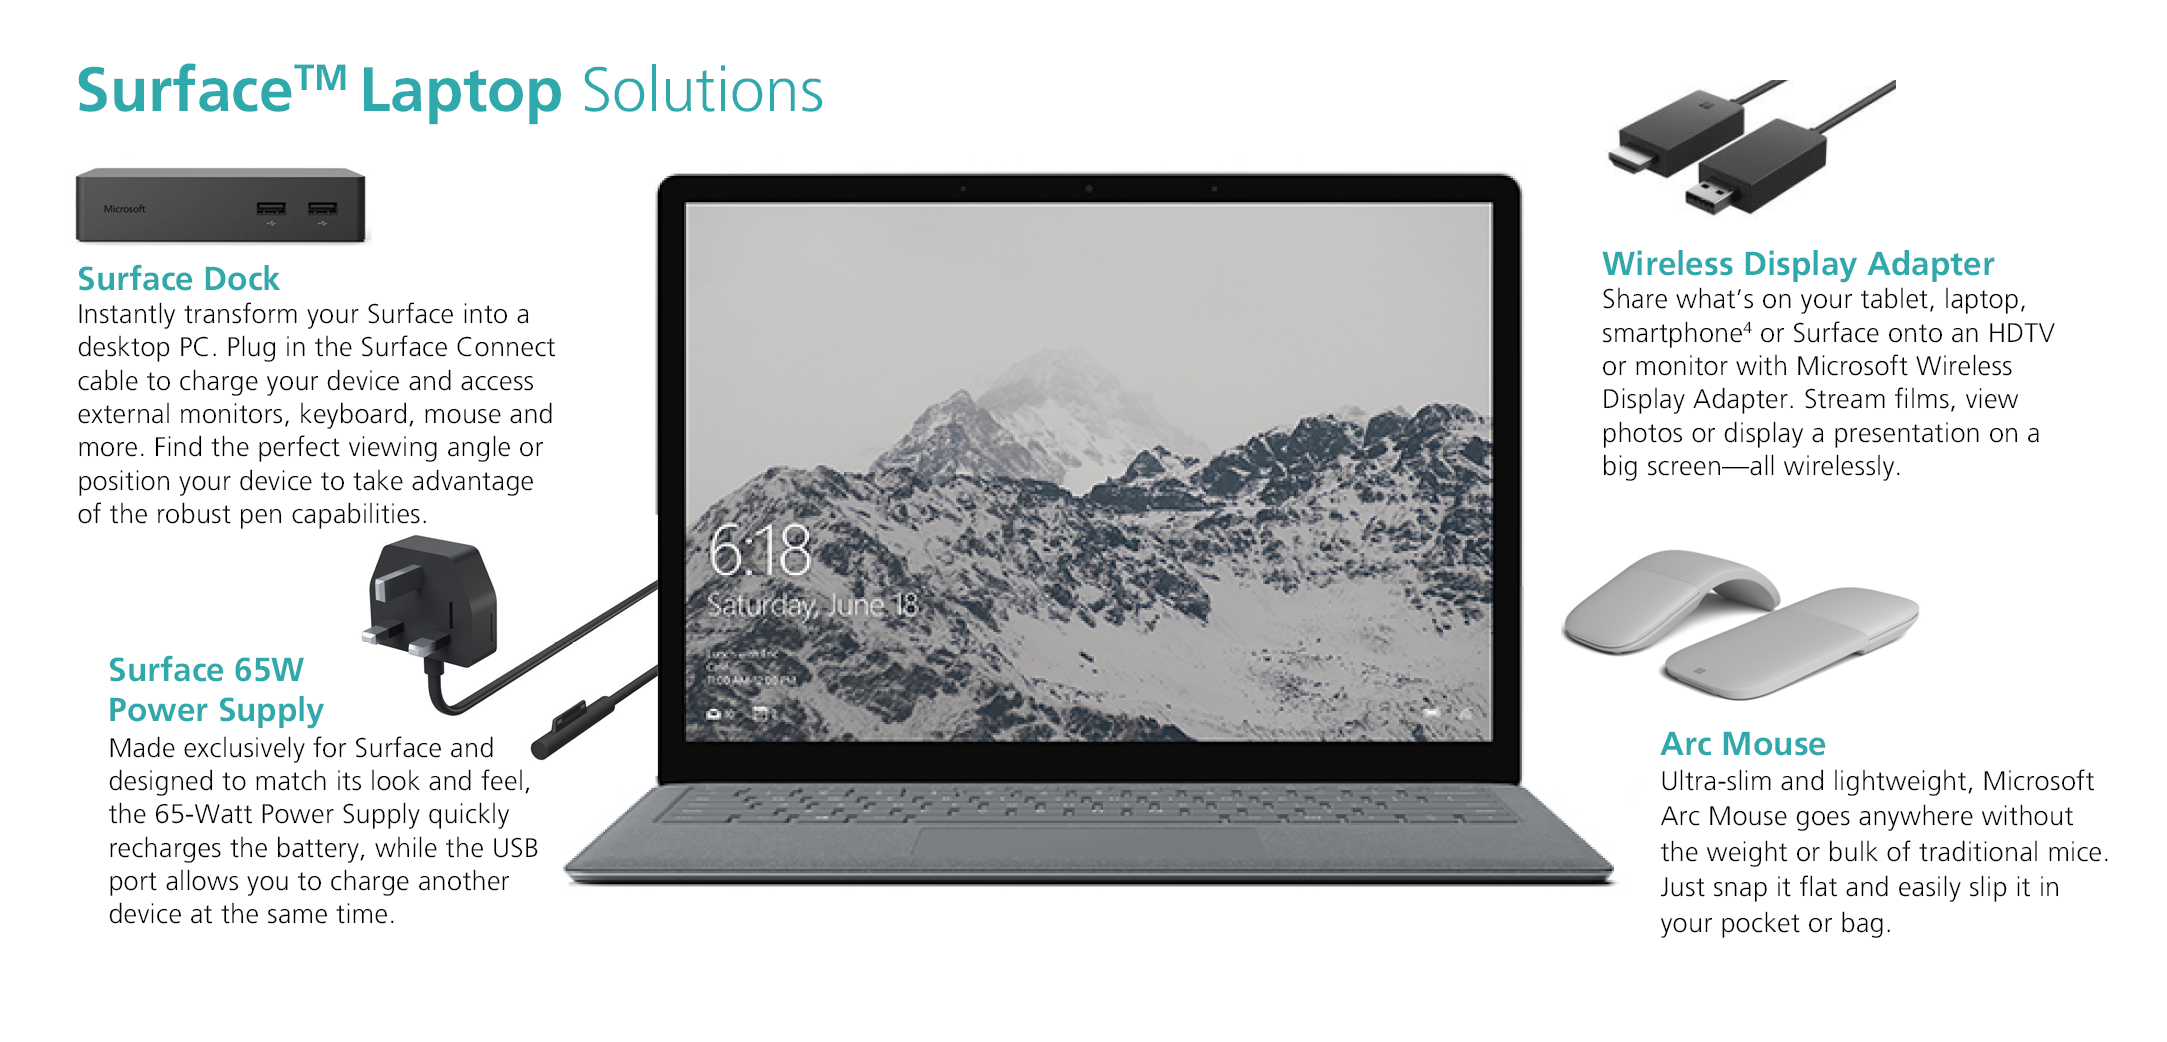 HDTV Microsoft Wireless Display Adapter For Win8 10 Surface Pro Laptop ASS